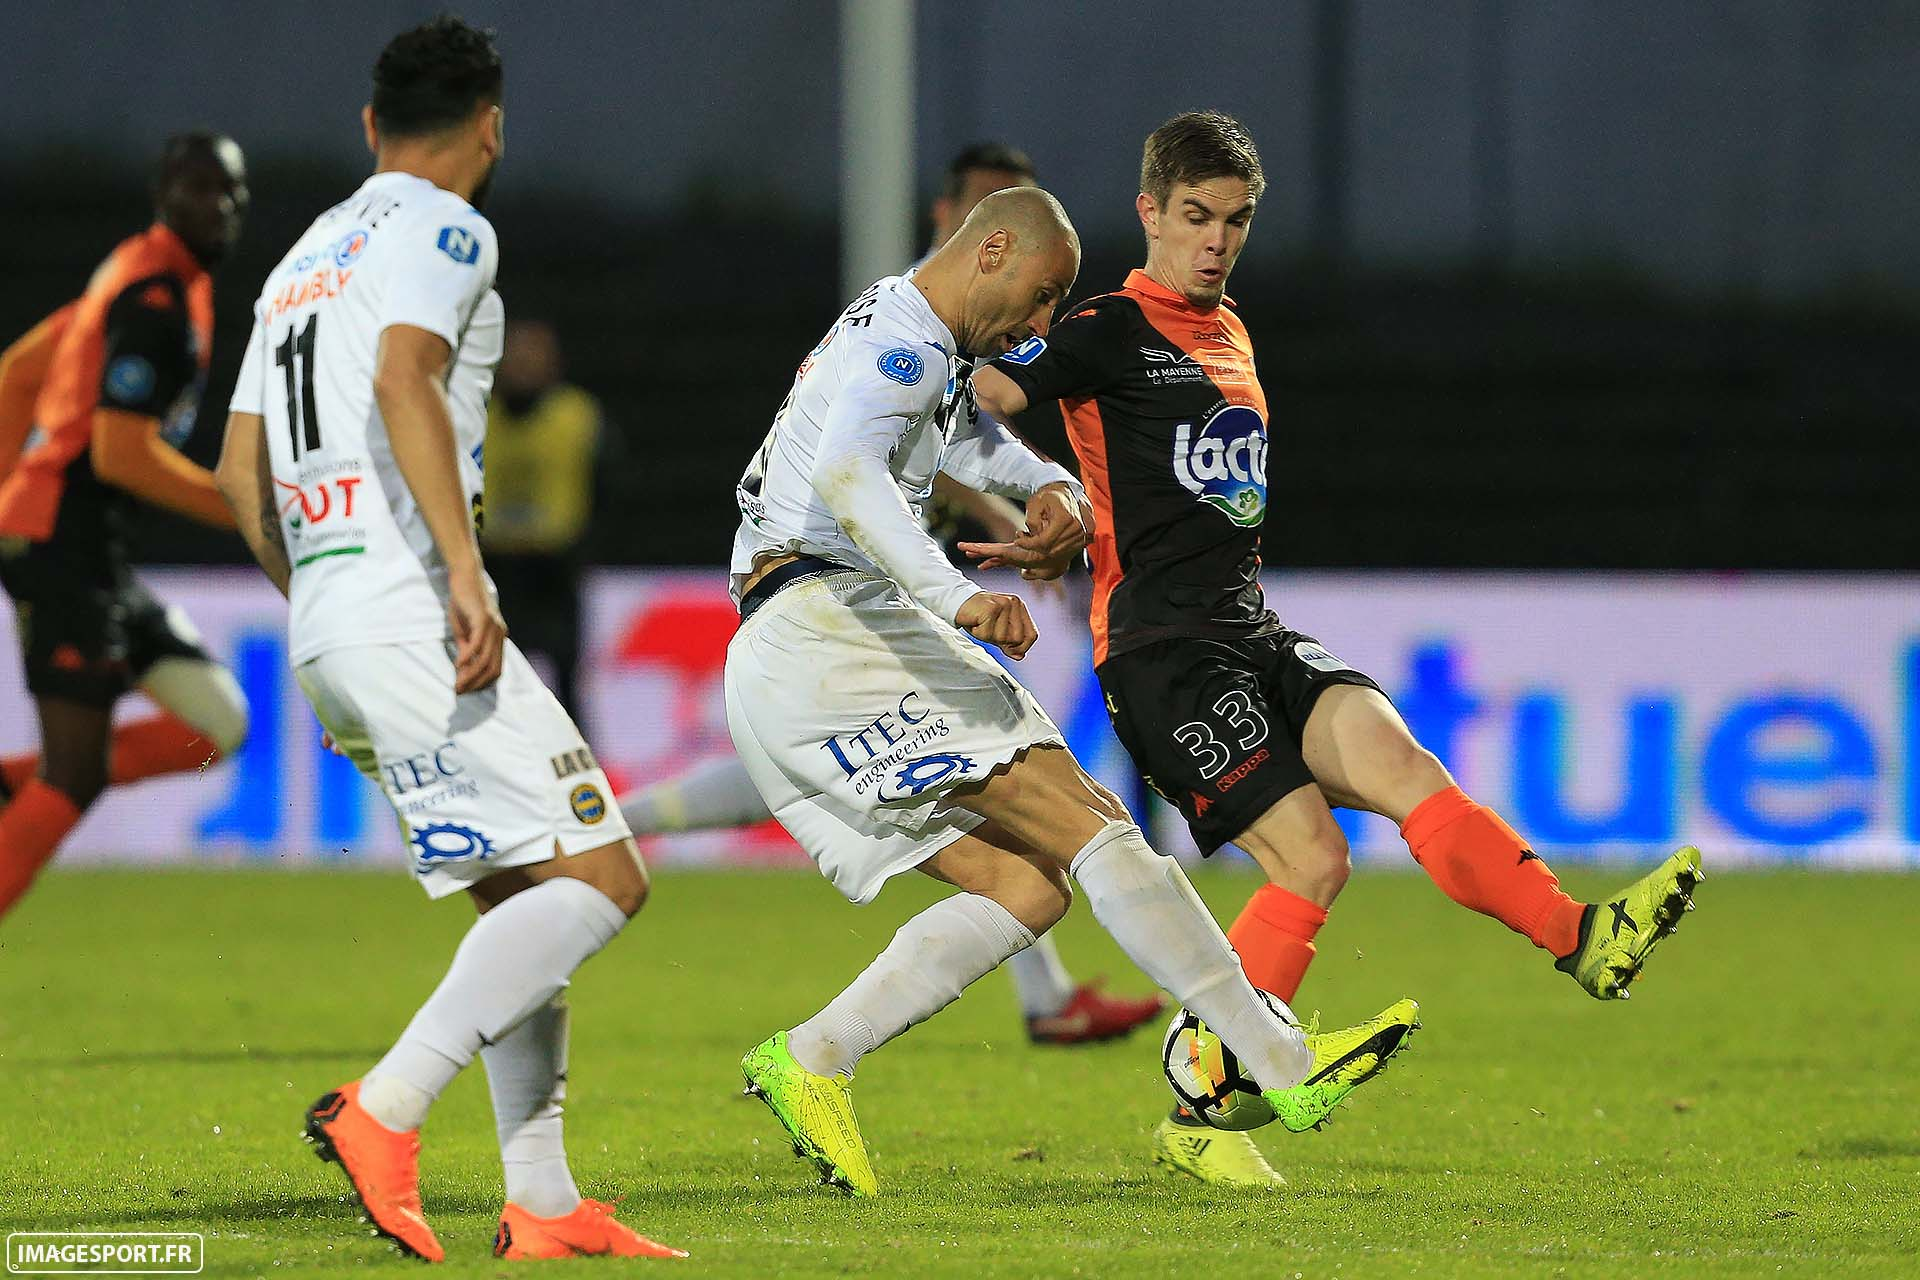 Laurent HELOÏSE (FC Chambly Oise) / Clément COUVRY (Stade Lavallois)